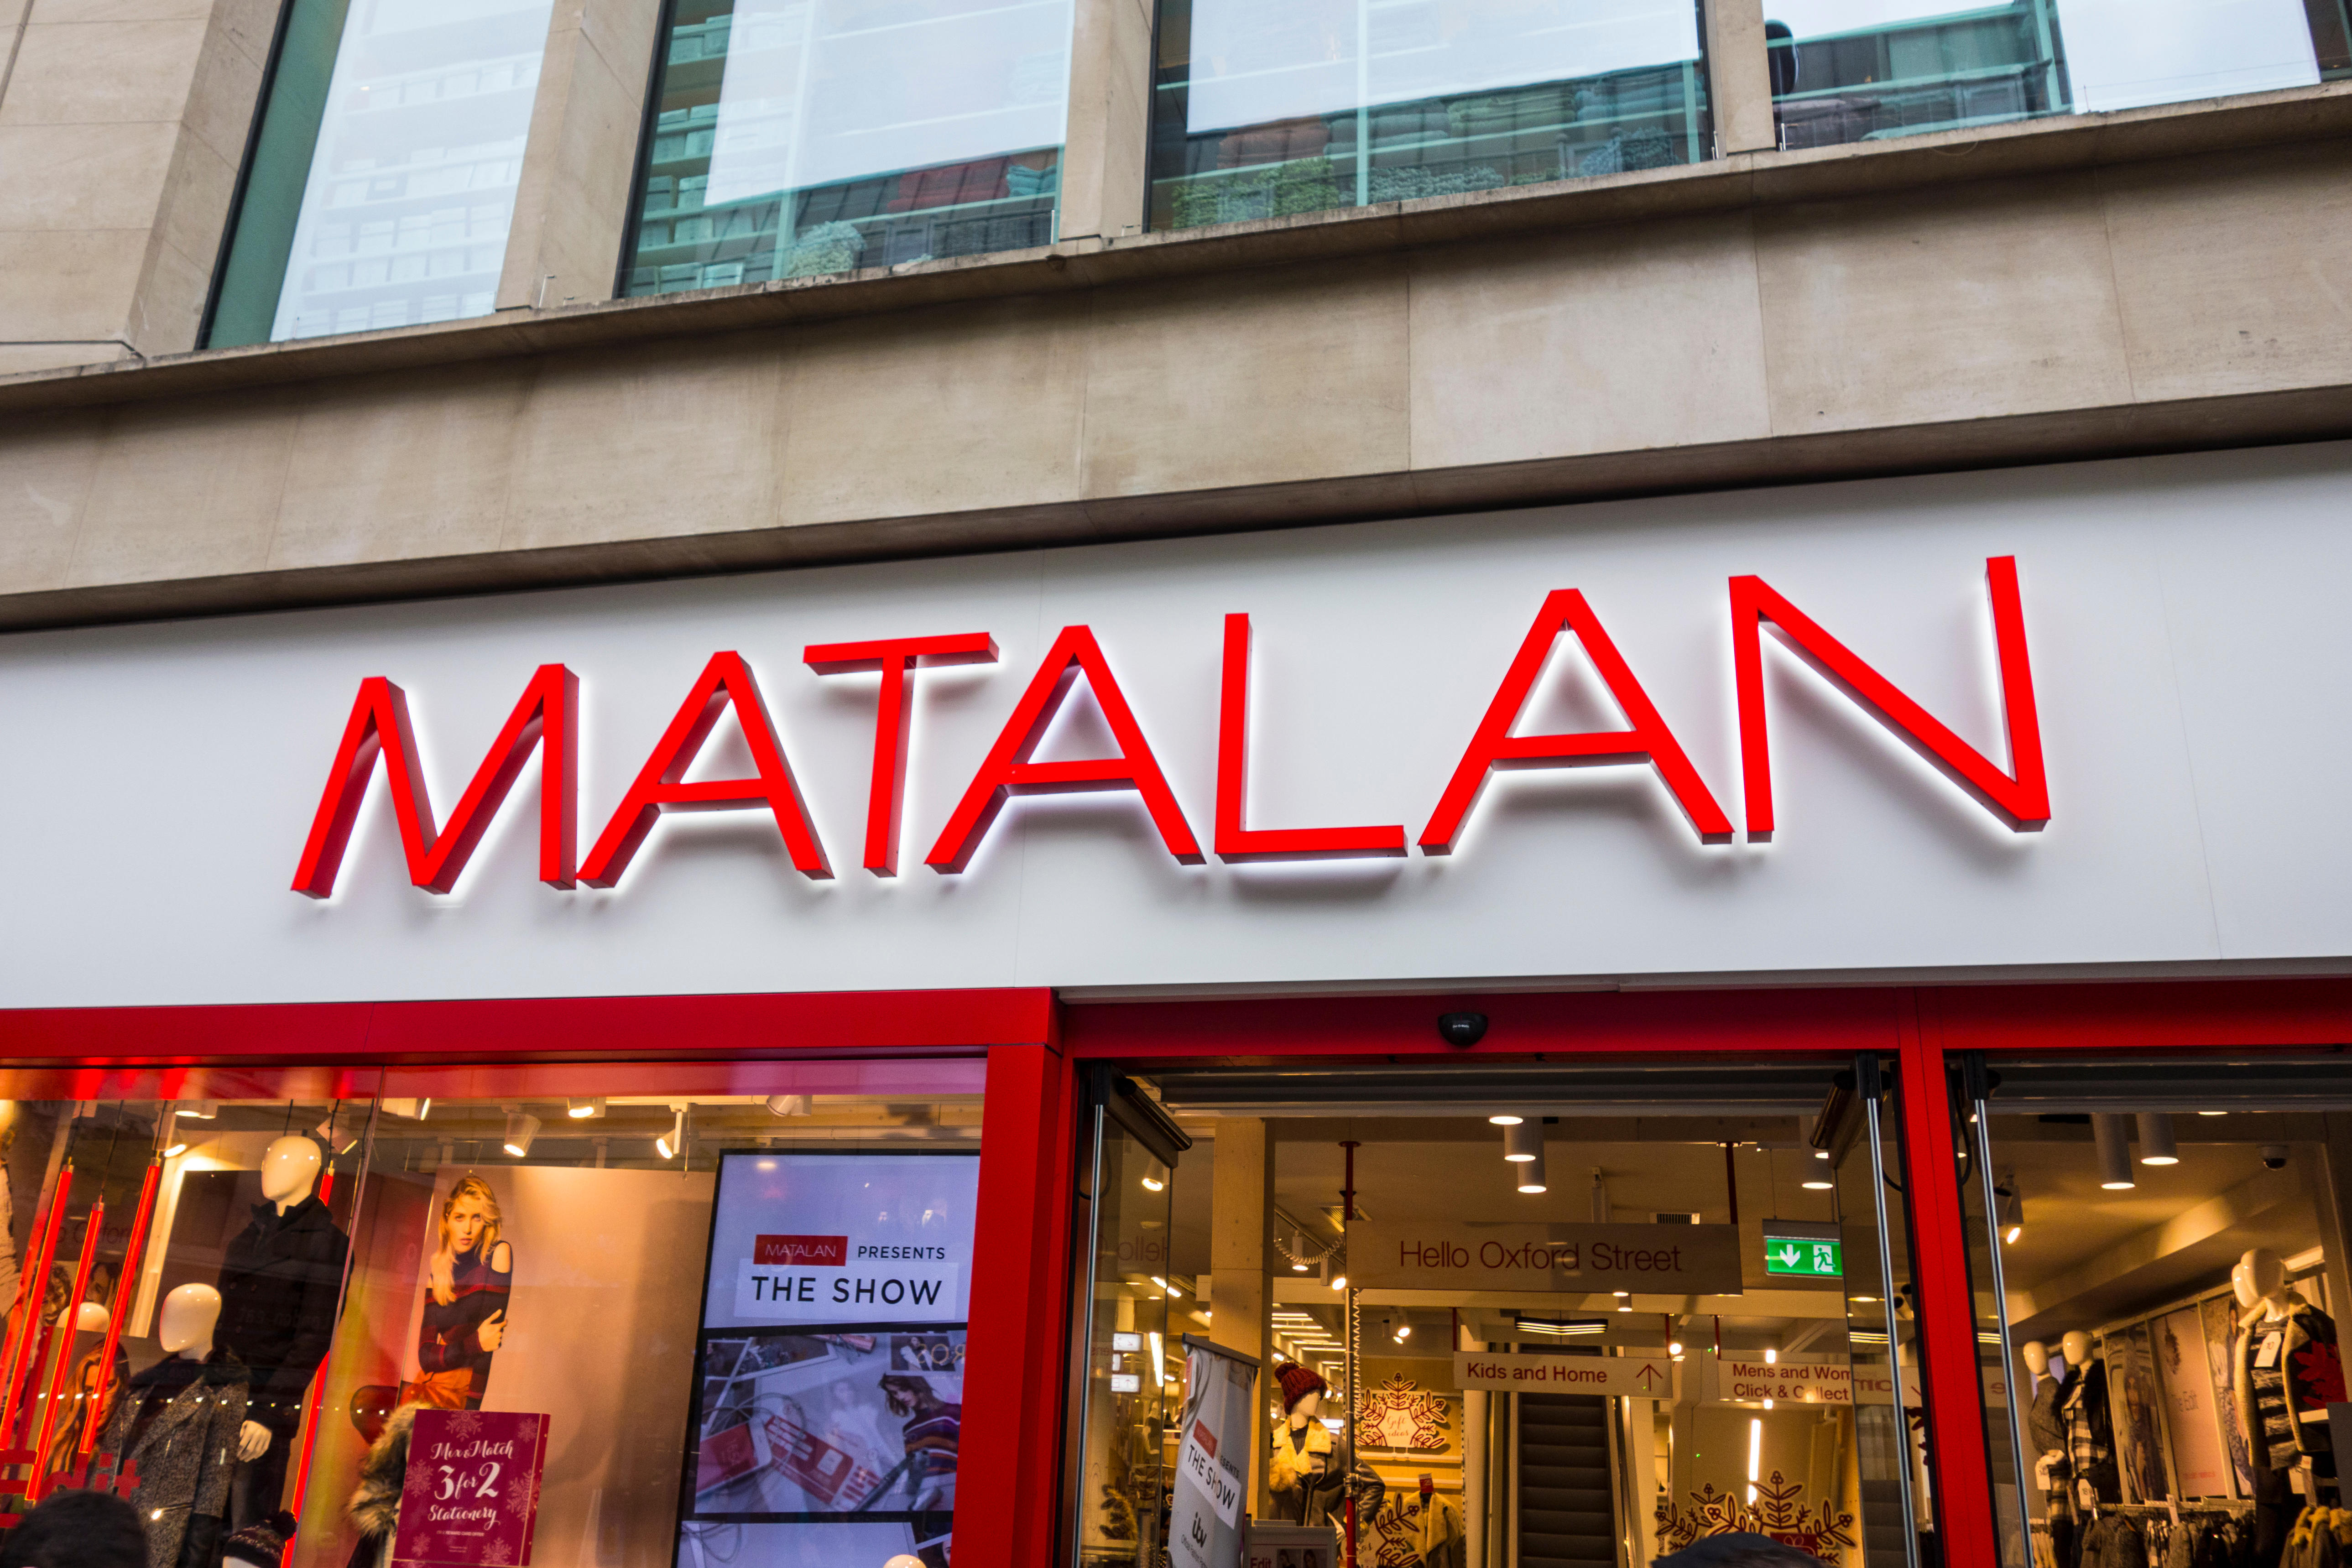 Matalan stores are open for click and collect during England's lockdown